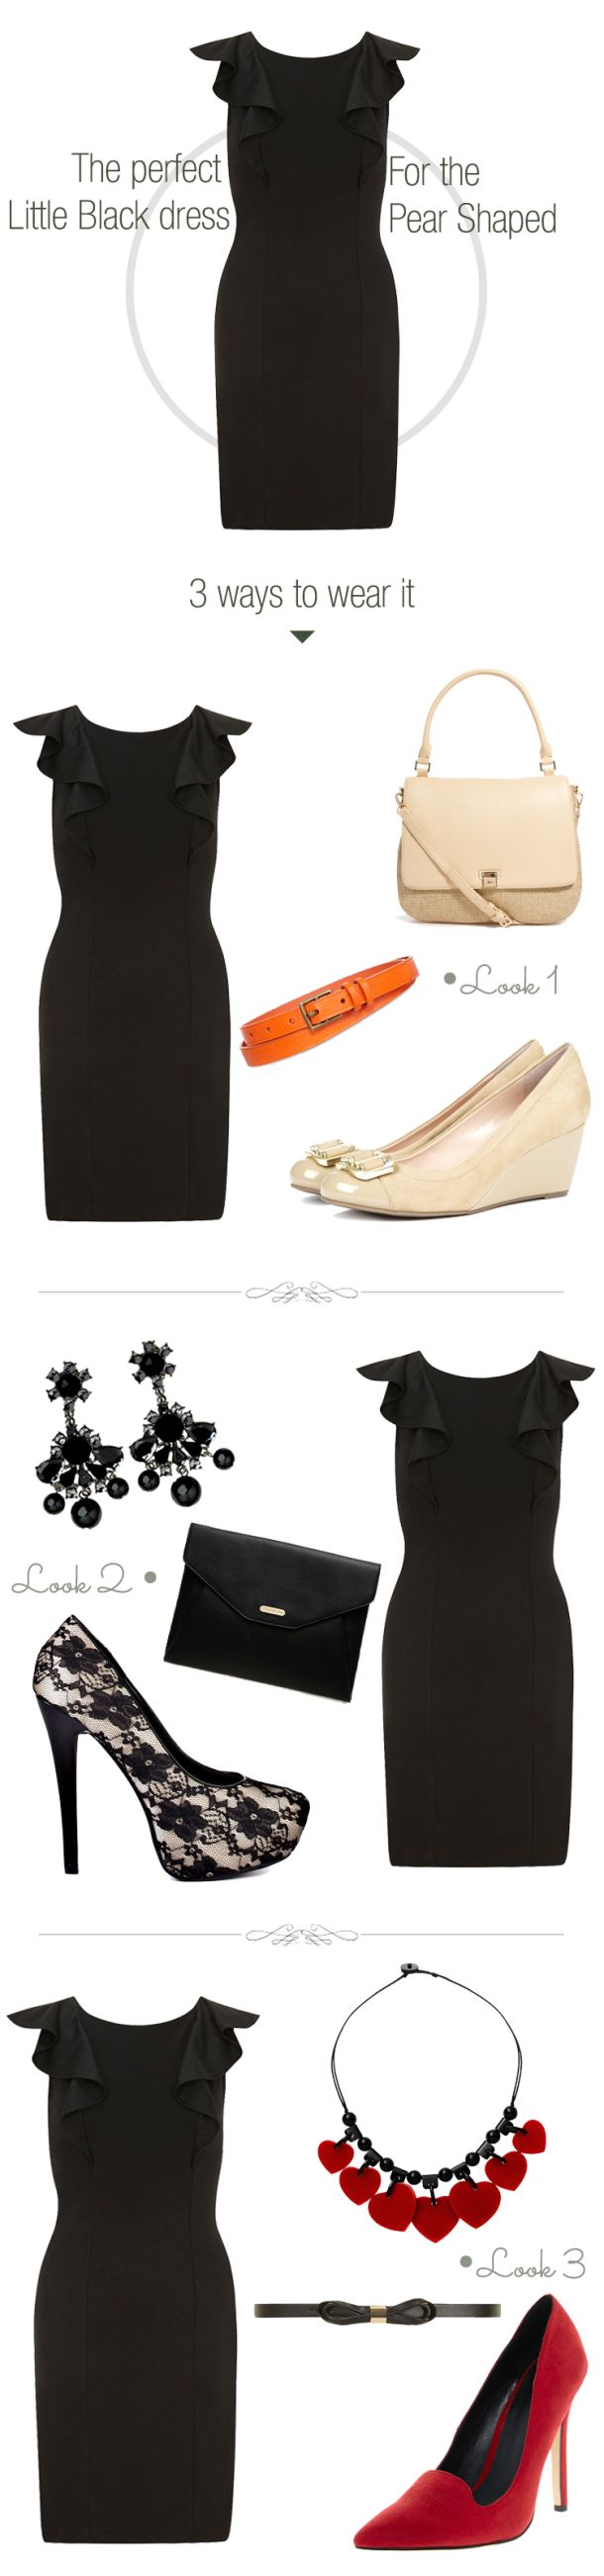 the-best-little-black-dress-for-the-pear-shaped woman. Remember you can carry off fitted clothing below the waist. Just balance our with ruffles or details on top. 3 ways to wear your LBD - Little black dress in the day for a formal evening event and to party.